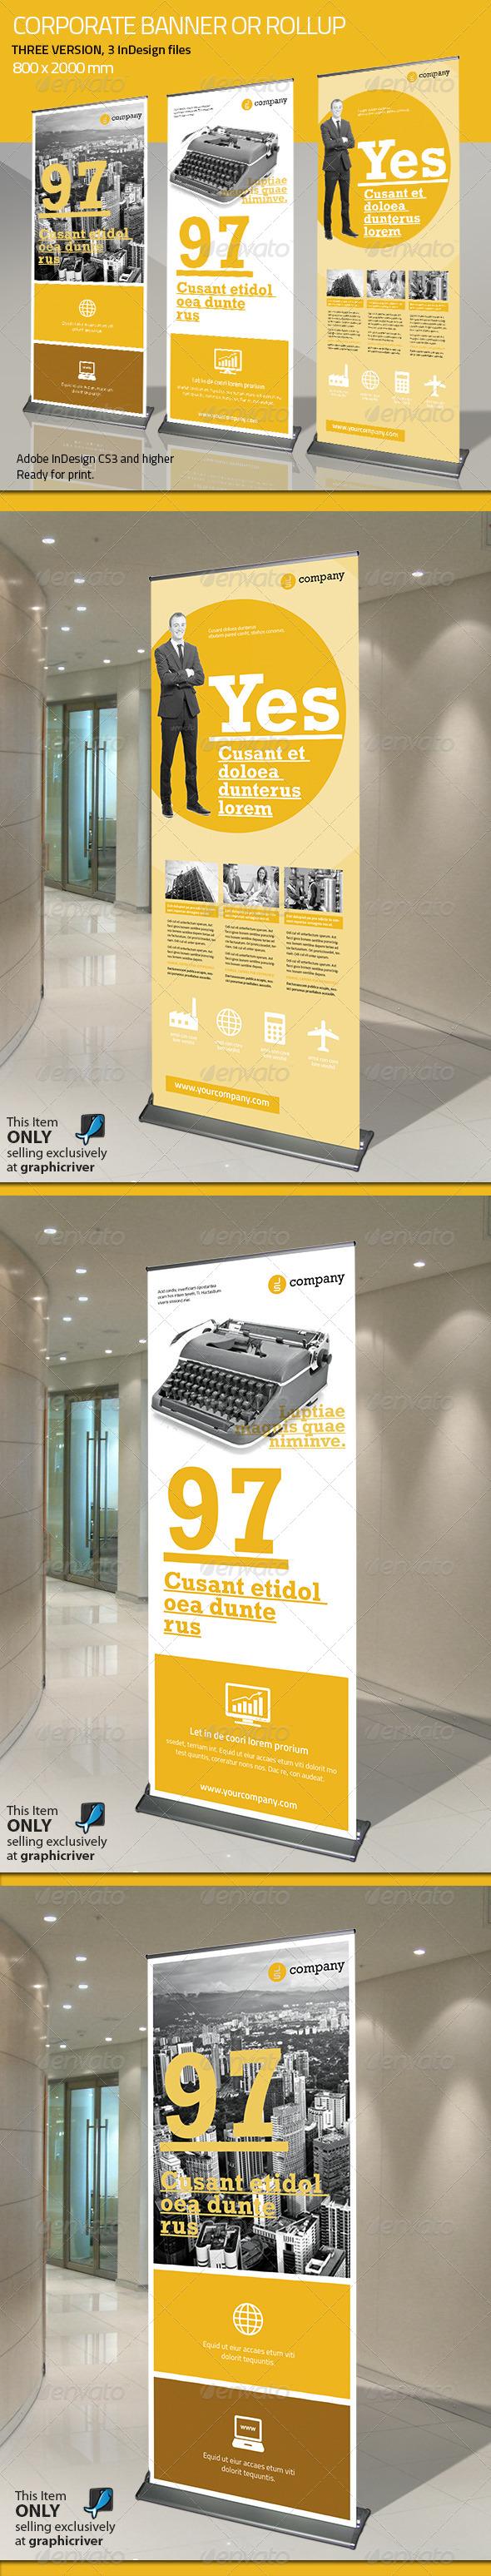 GraphicRiver Corporate Banner or Rollup Vol 5 7652342